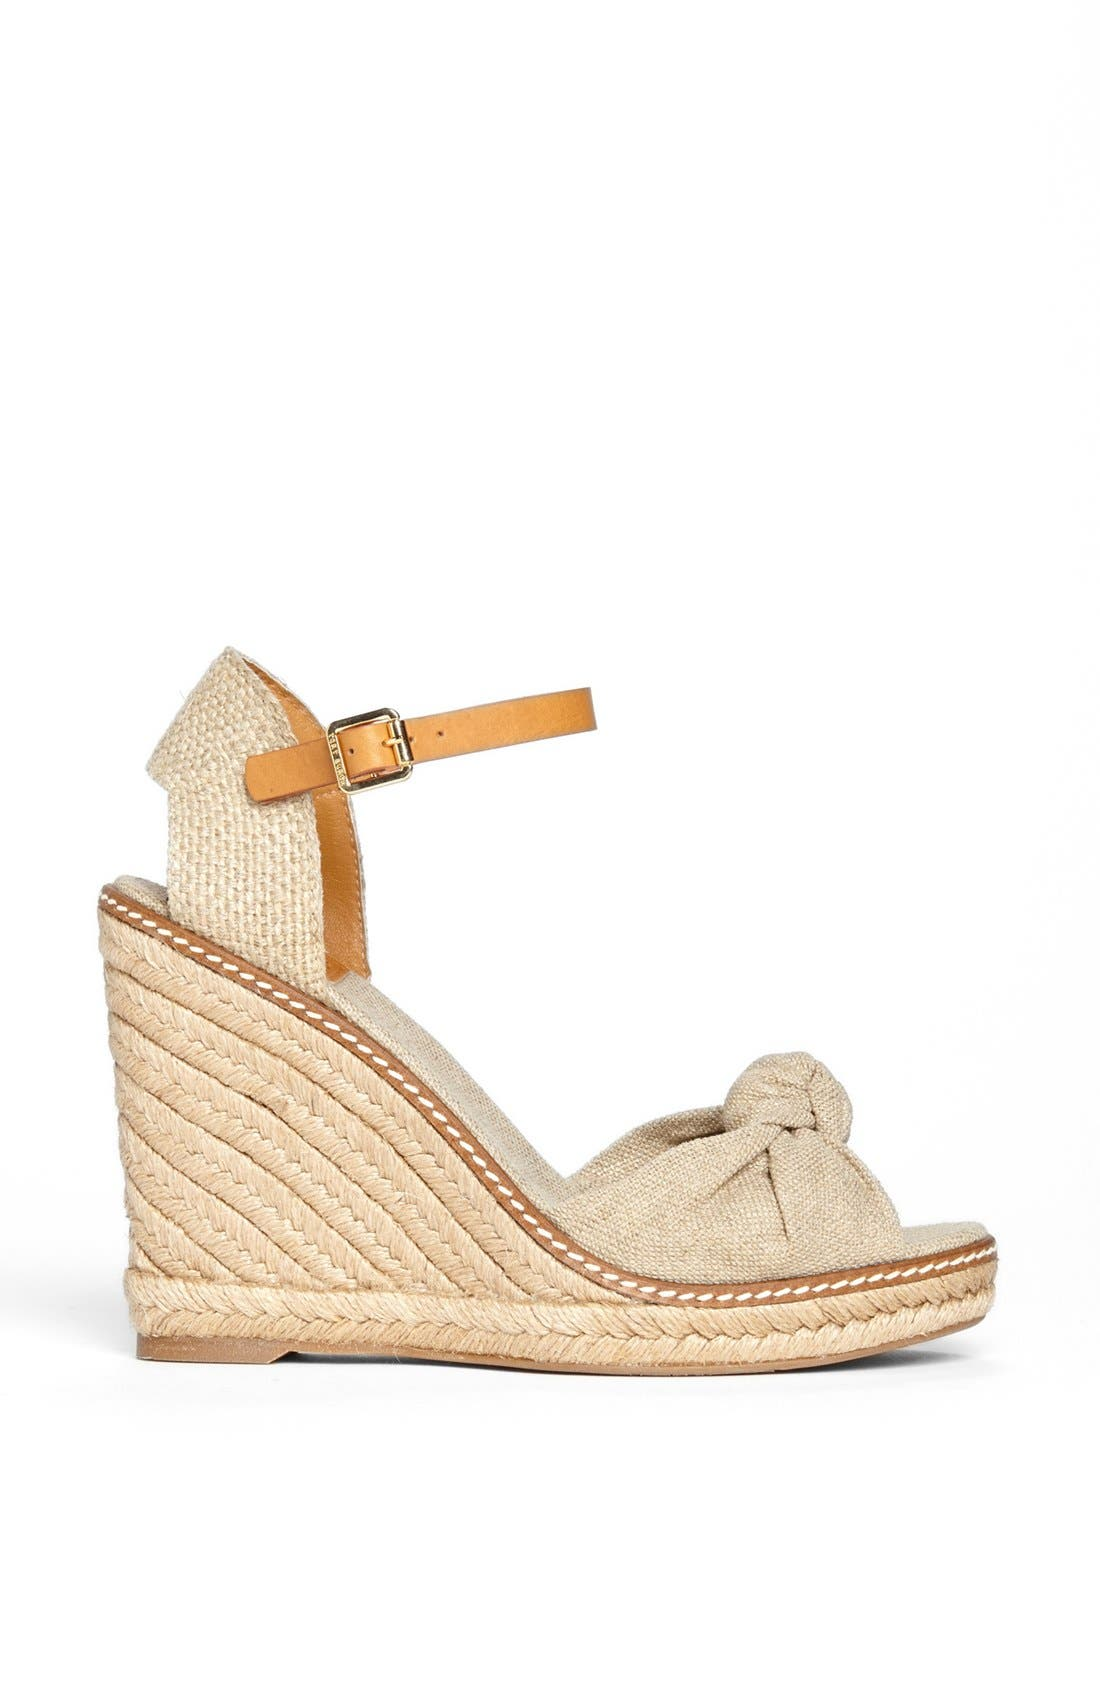 Alternate Image 4  - Tory Burch 'Macy' Leather Wedge Espadrille Sandal